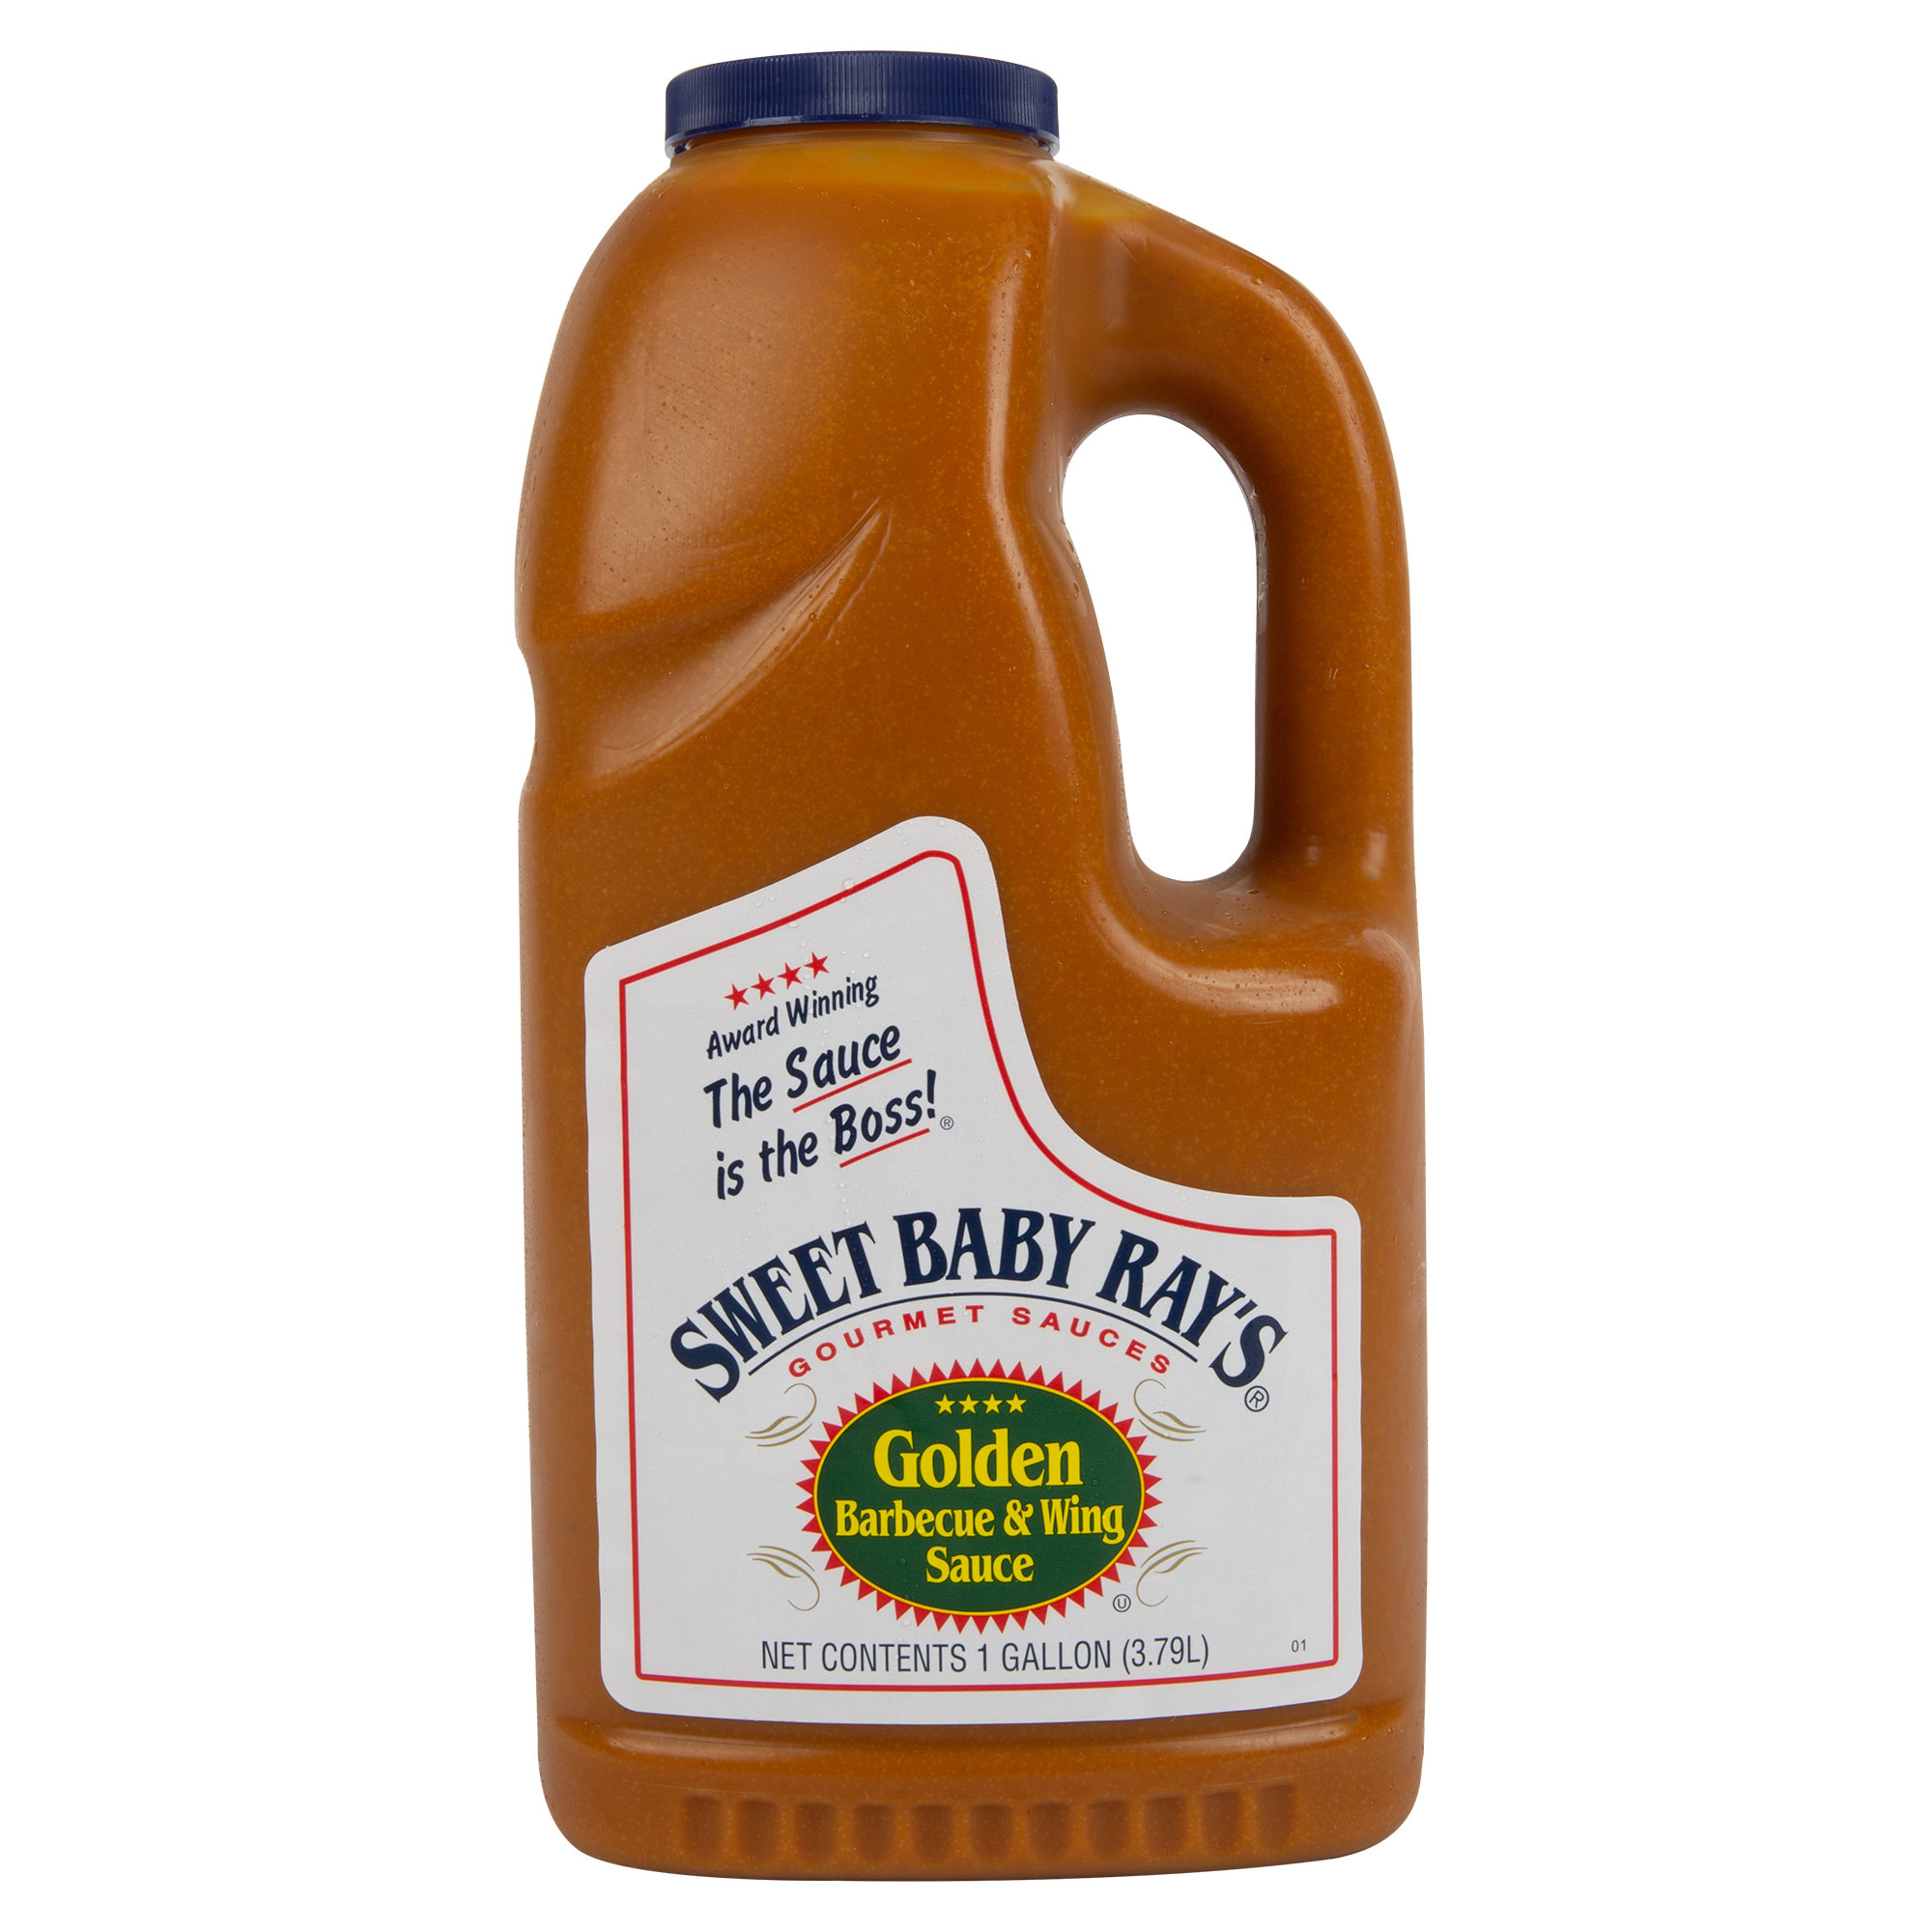 Соус золотое BBQ & крылышки Sweet Baby Ray's Golden Barbecue & Wing Sauce, 3,79литра\4,0 кг #5164993